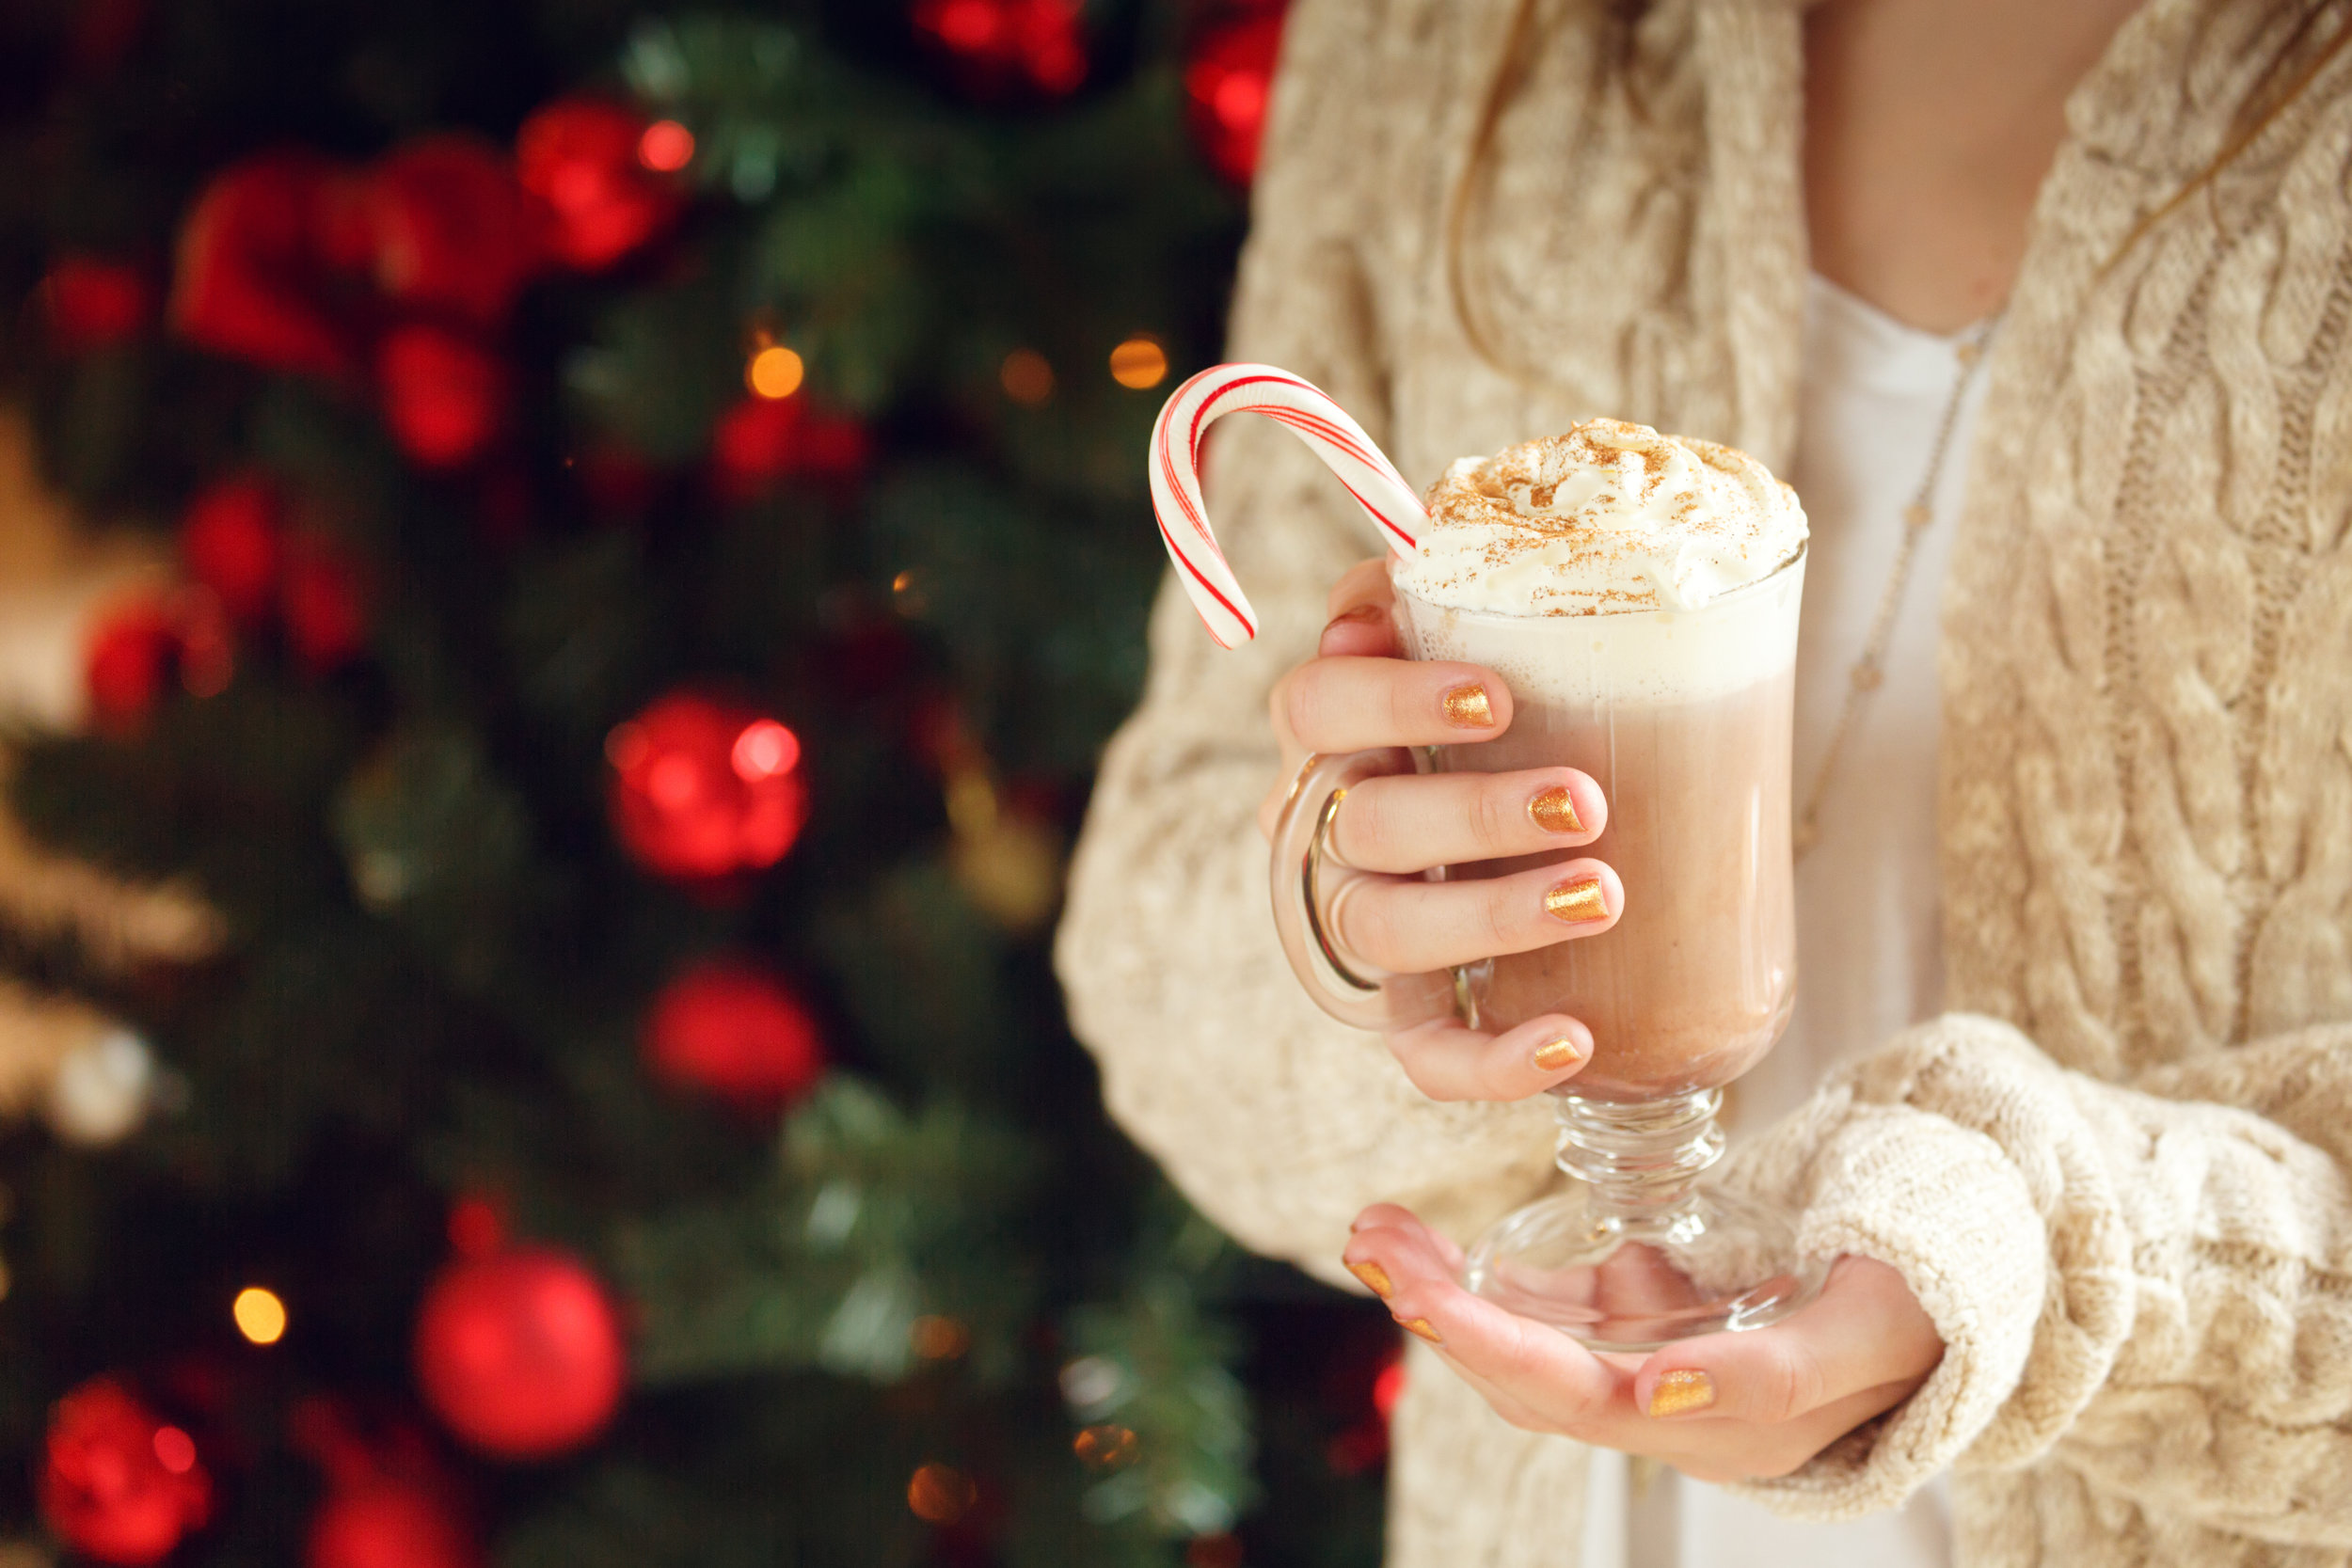 There's nothing quite like a peppermint latte at the holiday!